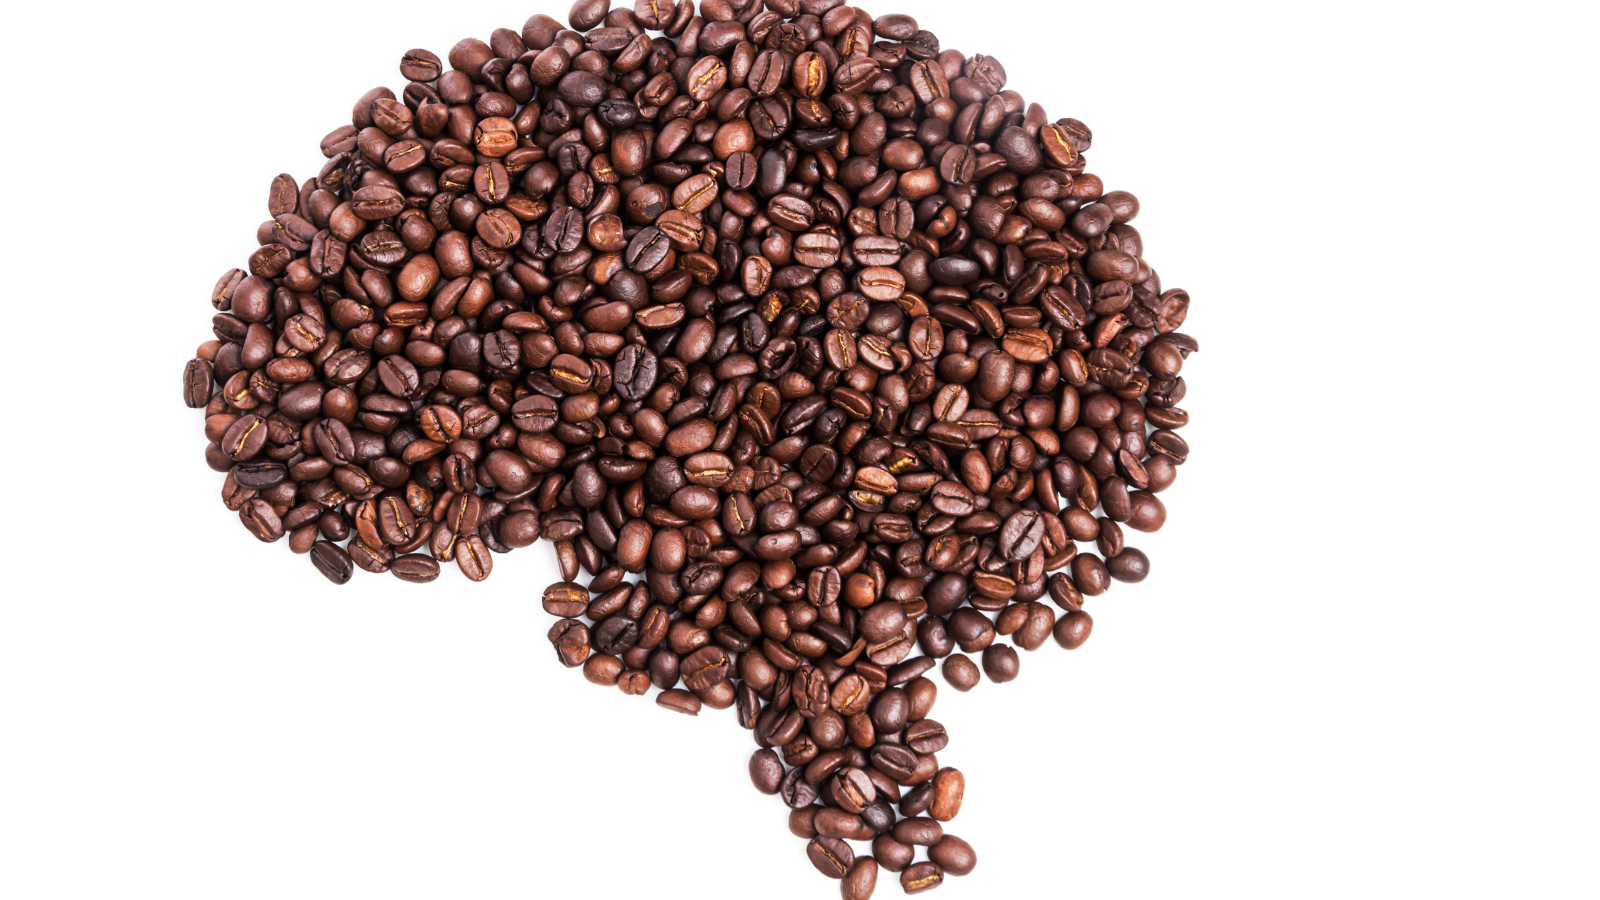 This is what happens to your brain when you drink coffee every day